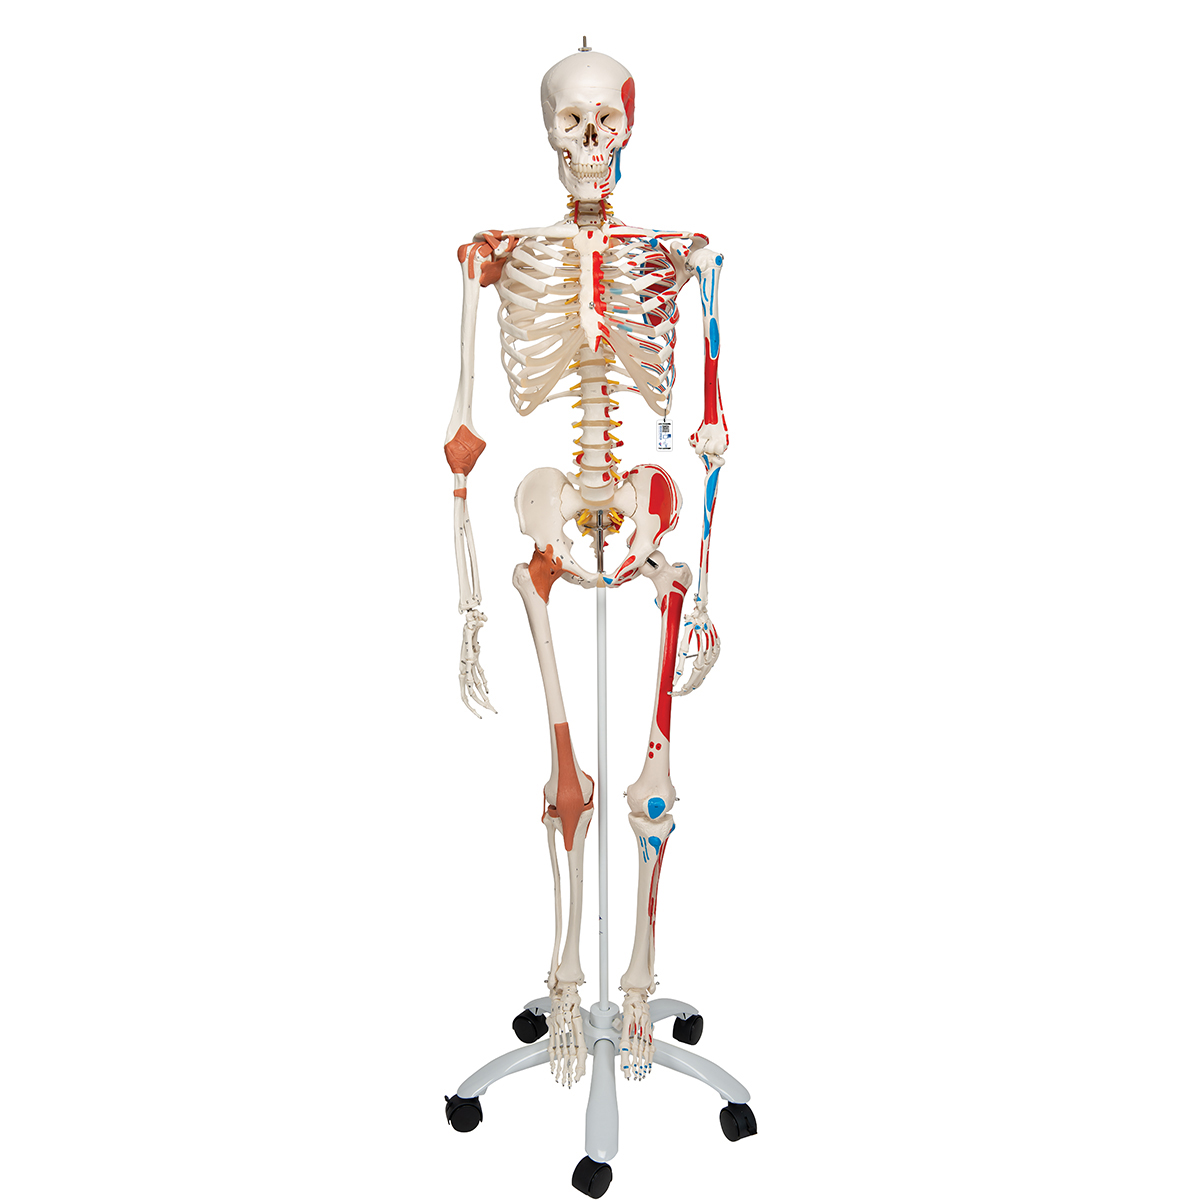 Sam Anatomical Skeleton Human Skeleton Model Sam Human